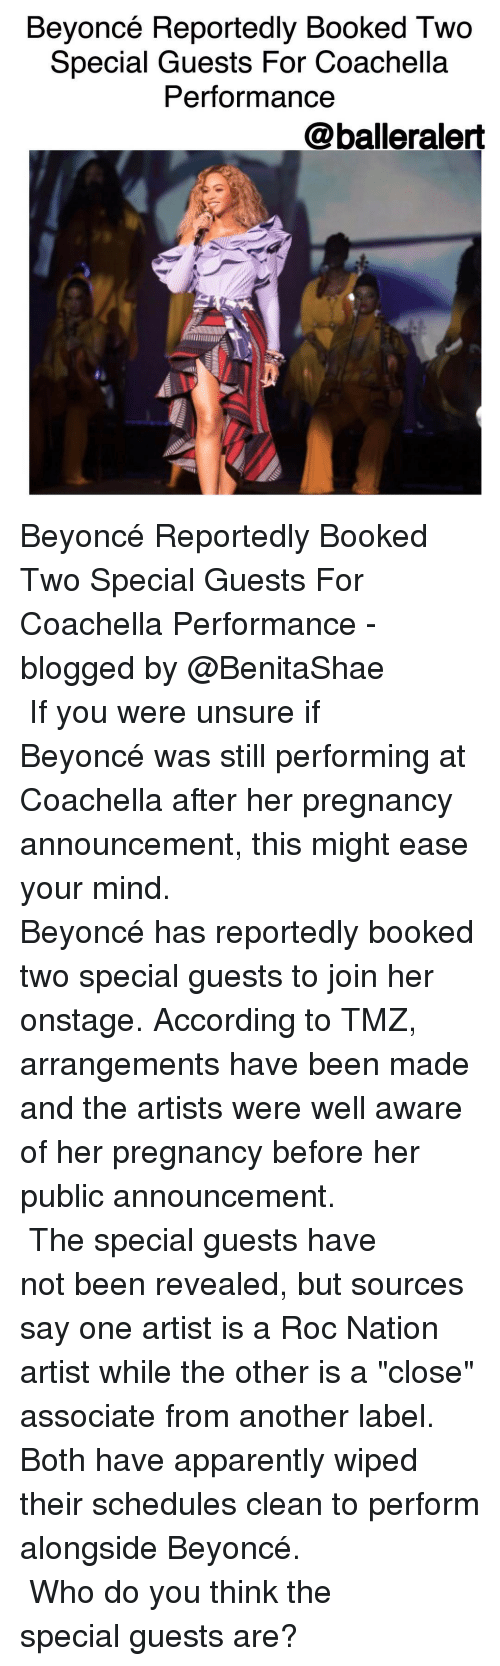 "Coachella, Memes, and Roc Nation: Beyoncé Reportedly Booked Two  Special Guests For Coachella  Performance  @balleralert Beyoncé Reportedly Booked Two Special Guests For Coachella Performance -blogged by @BenitaShae ⠀⠀⠀⠀⠀⠀⠀⠀⠀ ⠀⠀⠀⠀⠀⠀⠀⠀⠀ If you were unsure if Beyoncé was still performing at Coachella after her pregnancy announcement, this might ease your mind. ⠀⠀⠀⠀⠀⠀⠀⠀⠀ ⠀⠀⠀⠀⠀⠀⠀⠀⠀ Beyoncé has reportedly booked two special guests to join her onstage. According to TMZ, arrangements have been made and the artists were well aware of her pregnancy before her public announcement. ⠀⠀⠀⠀⠀⠀⠀⠀⠀ ⠀⠀⠀⠀⠀⠀⠀⠀⠀ The special guests have not been revealed, but sources say one artist is a Roc Nation artist while the other is a ""close"" associate from another label. Both have apparently wiped their schedules clean to perform alongside Beyoncé. ⠀⠀⠀⠀⠀⠀⠀⠀⠀ ⠀⠀⠀⠀⠀⠀⠀⠀⠀ Who do you think the special guests are?"